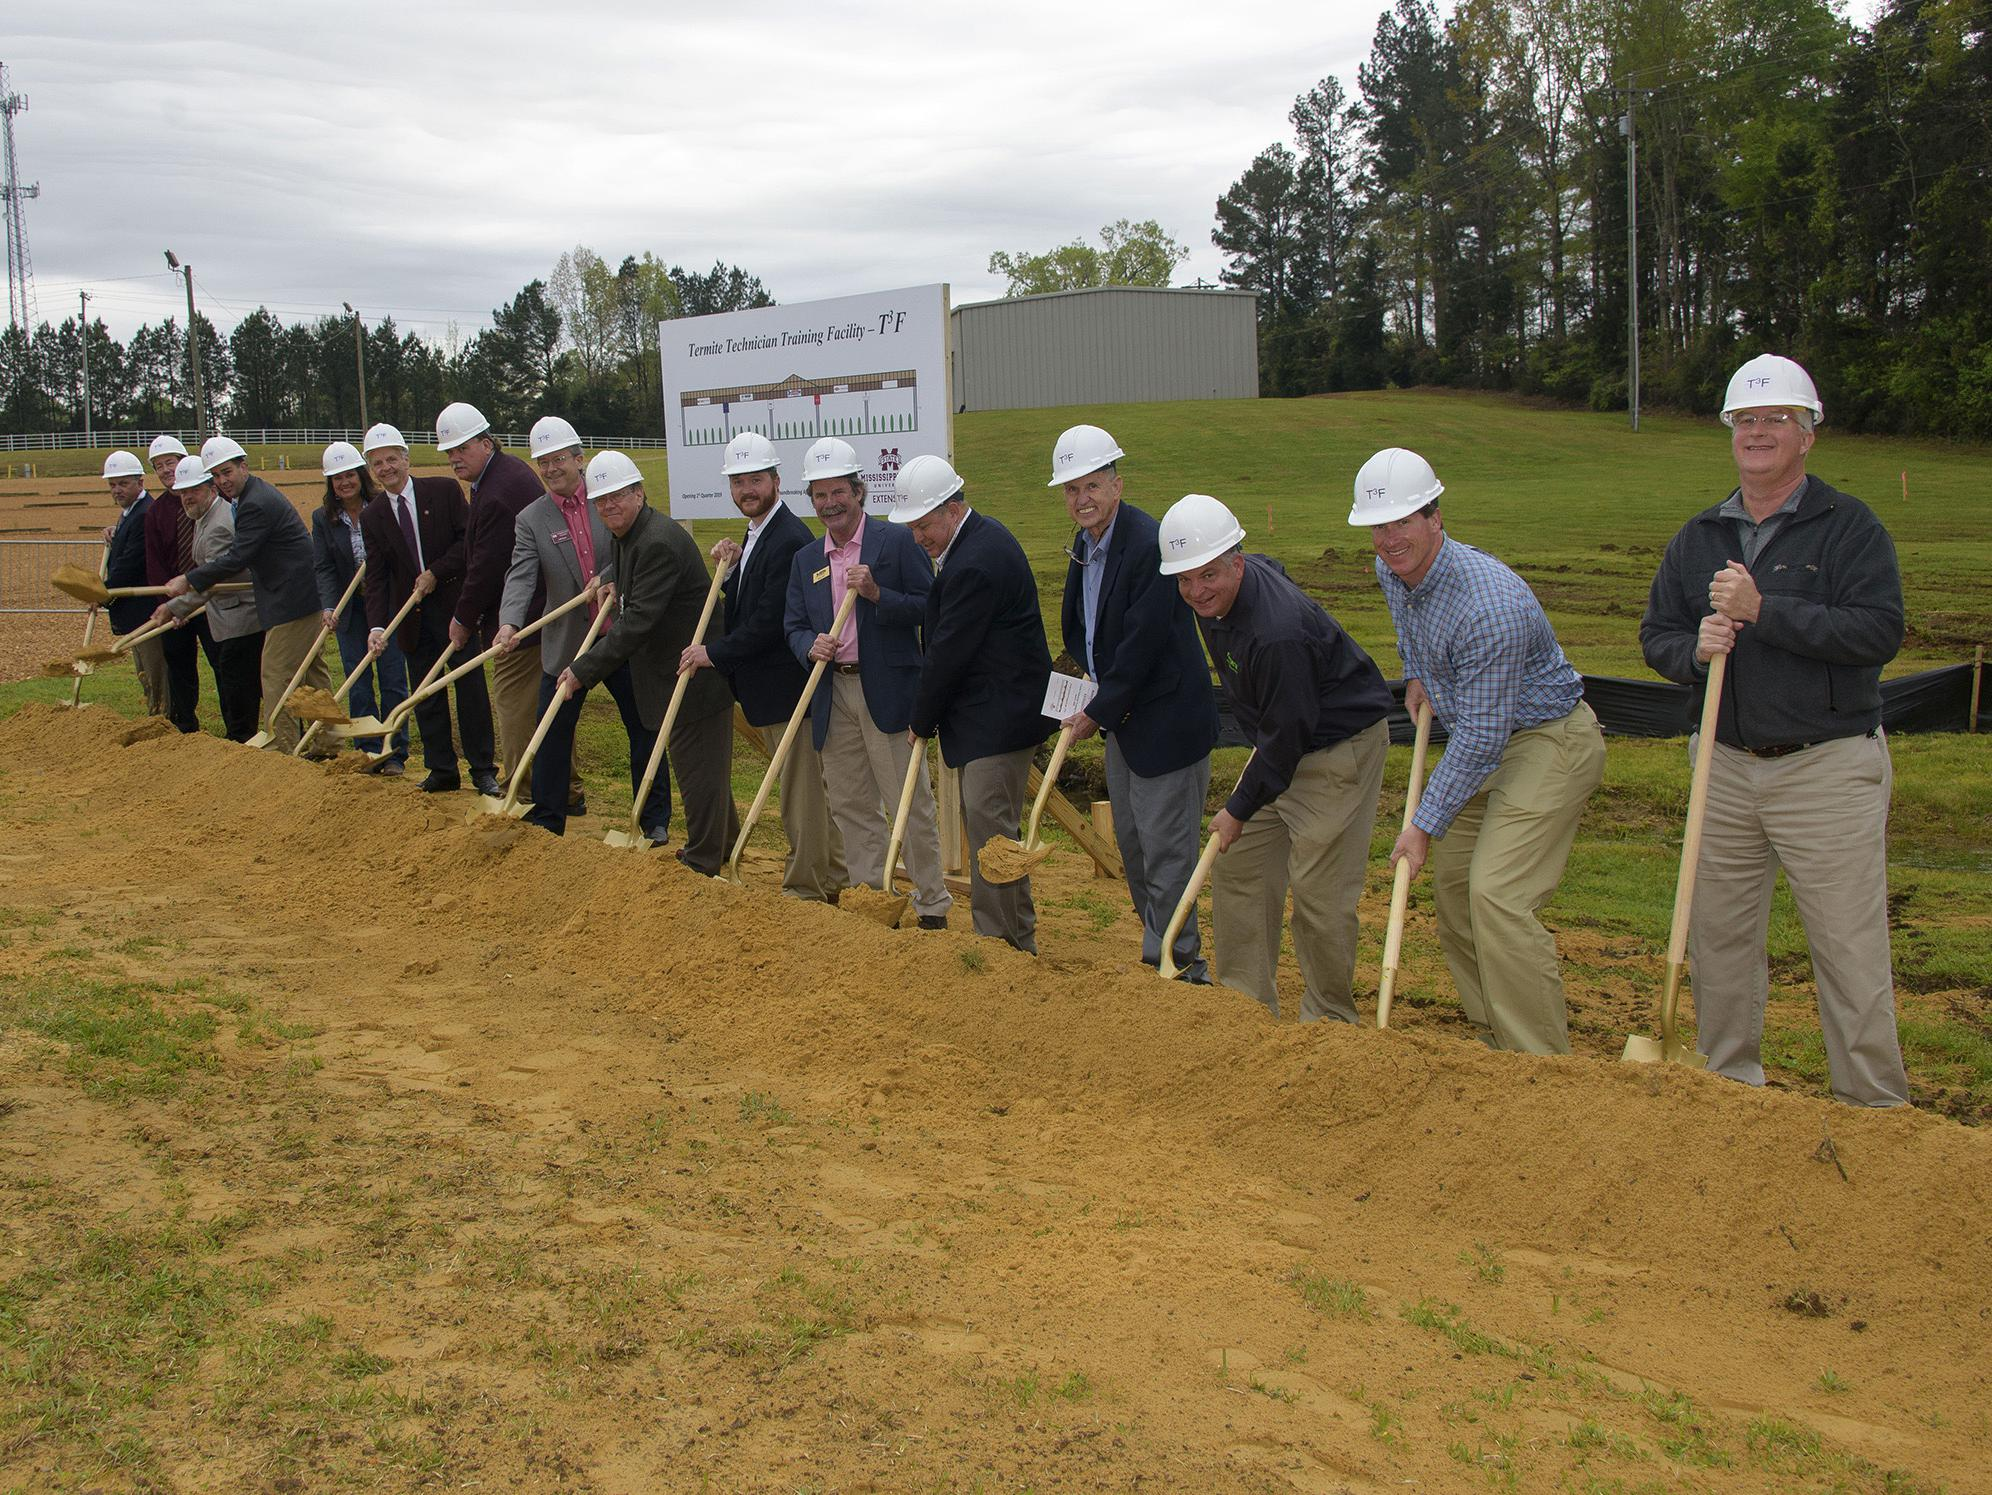 A group of more than a dozen people in hard hats break ground with shovels.